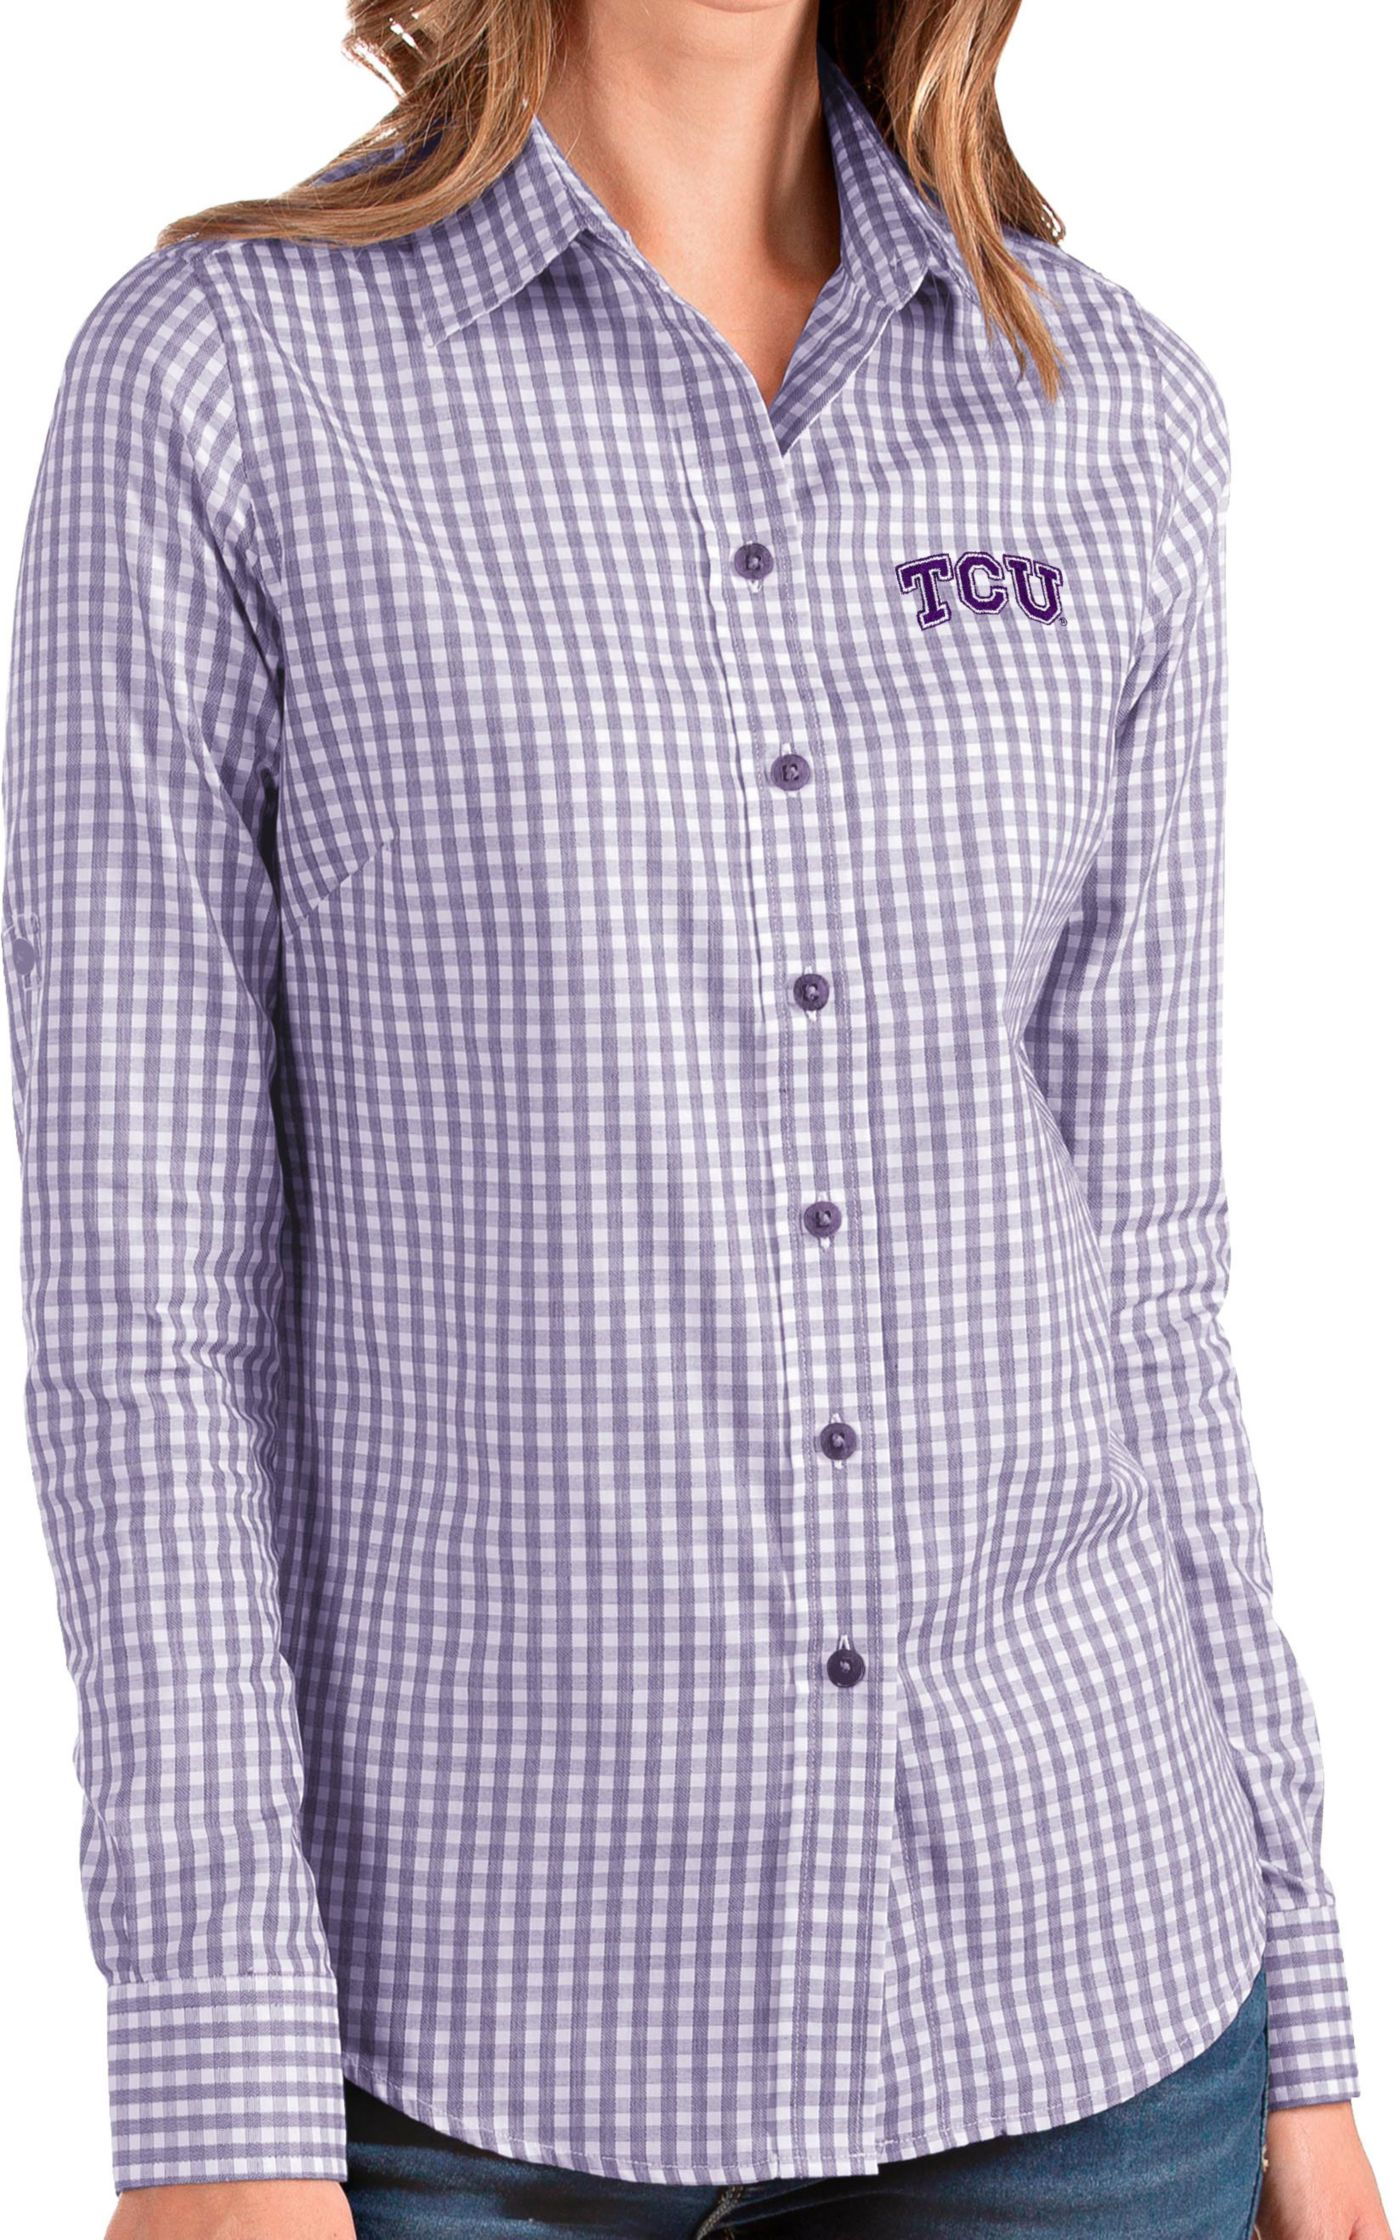 Antigua Women's TCU Horned Frogs Purple Structure Button Down Long Sleeve Shirt